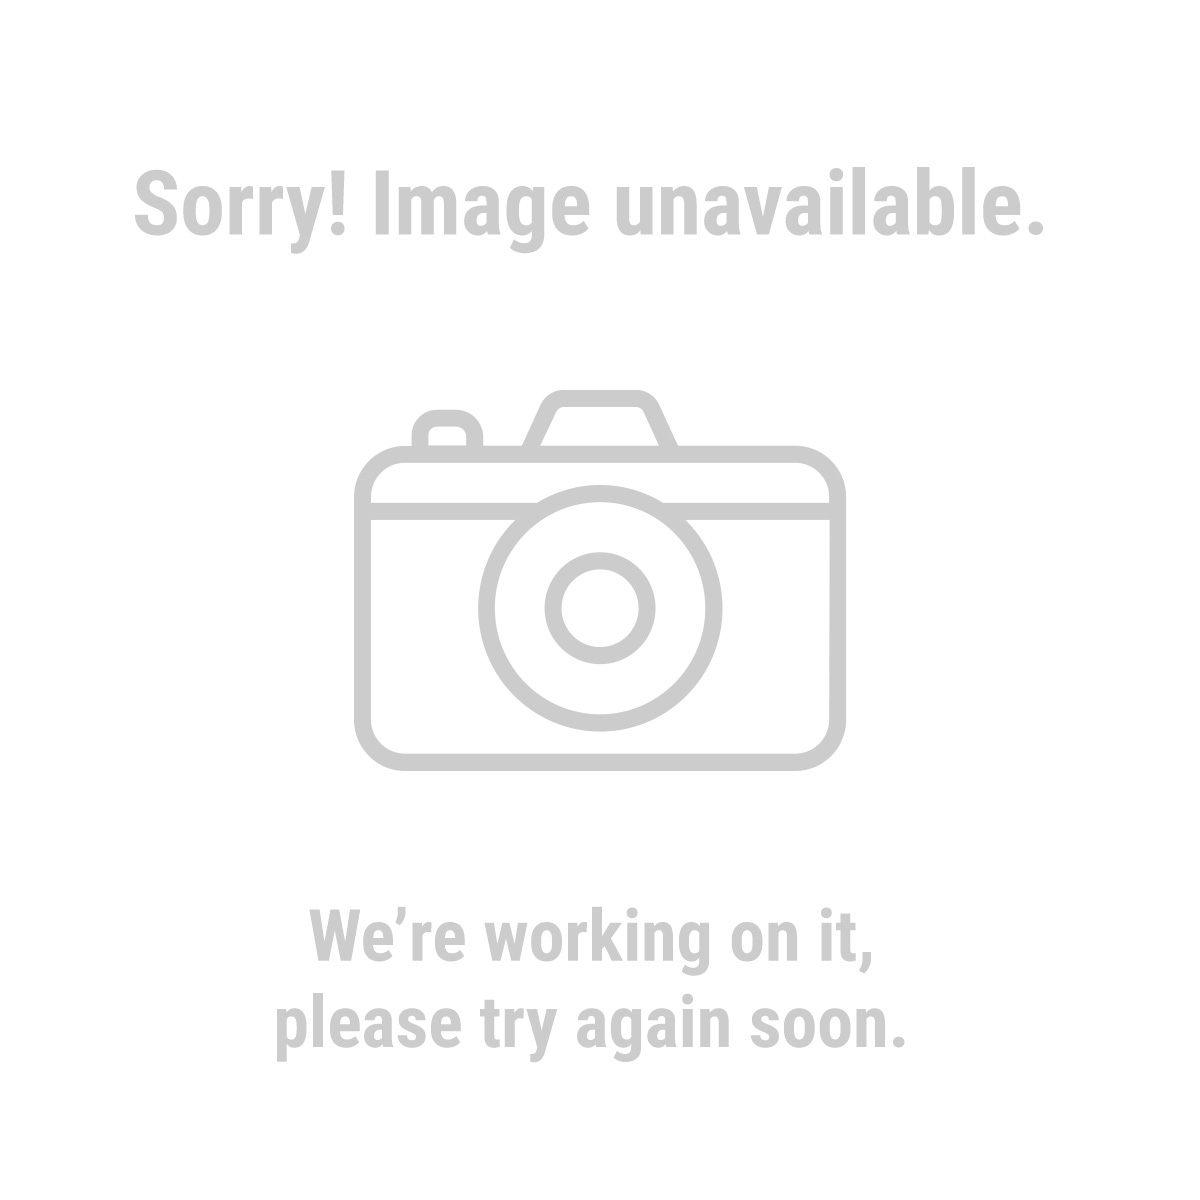 Cen-Tech® 37772 11 Function Digital Multimeter with Audible Continuity